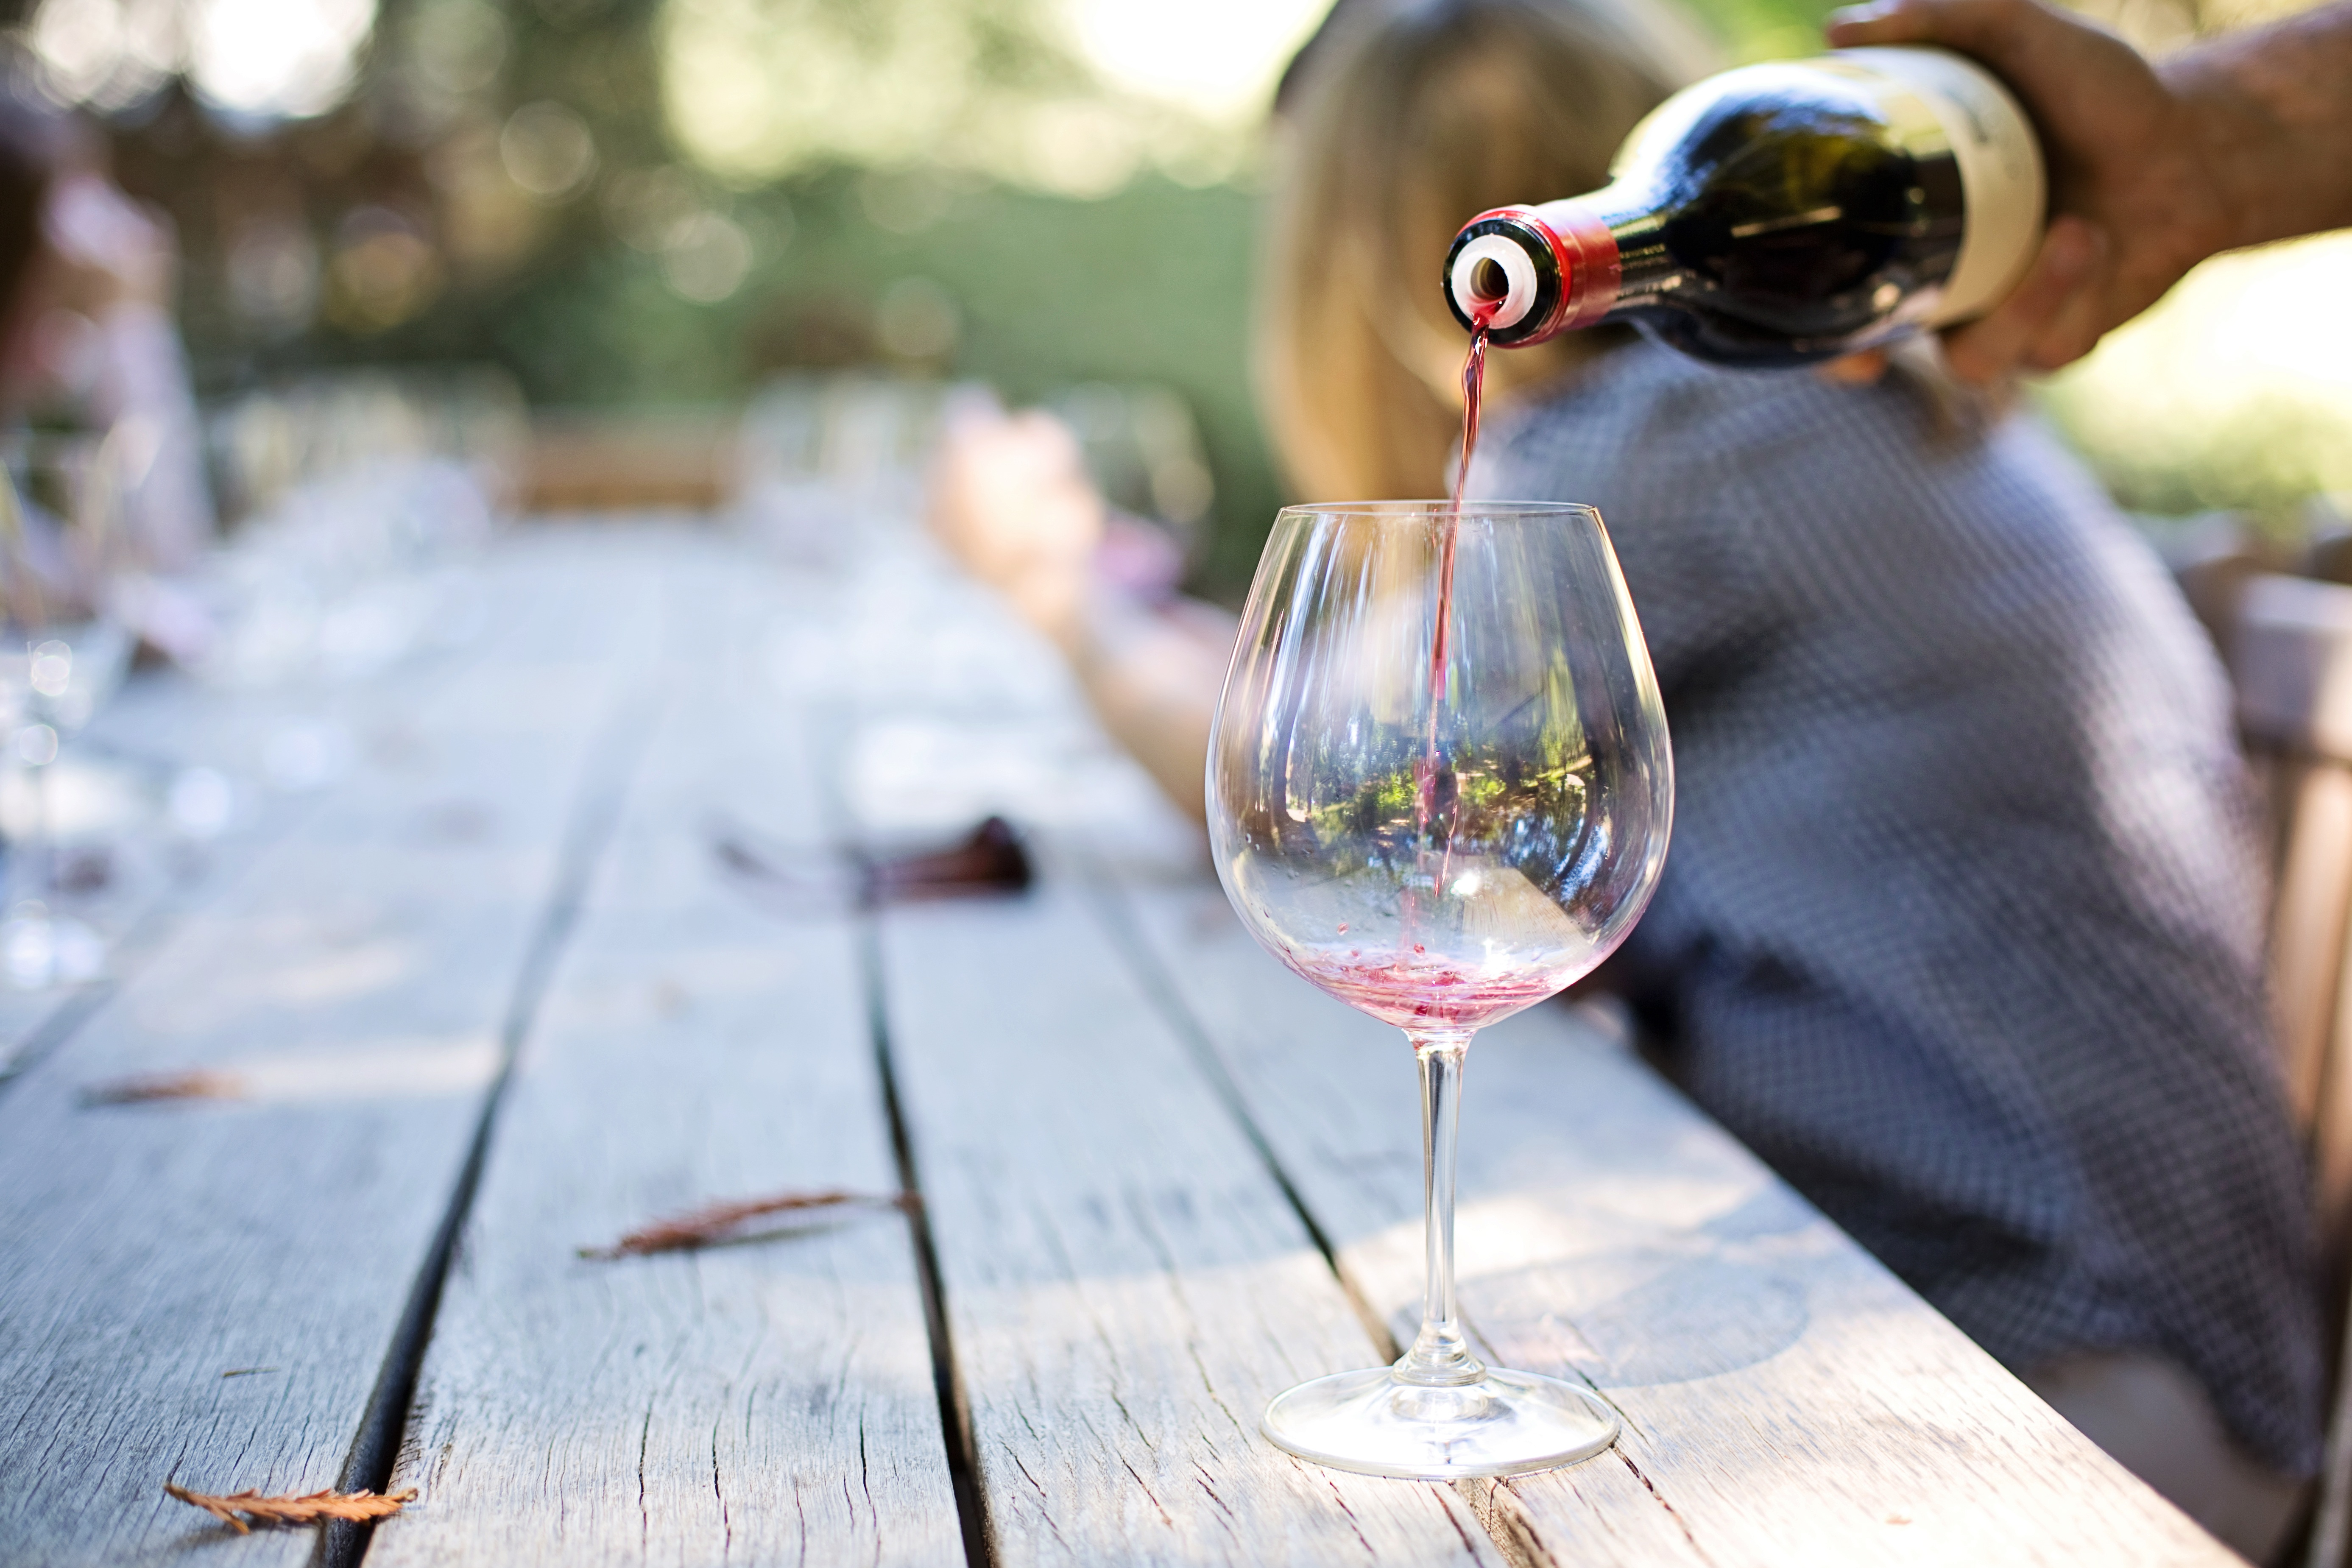 Things to do in Kelowna - Wine Tour